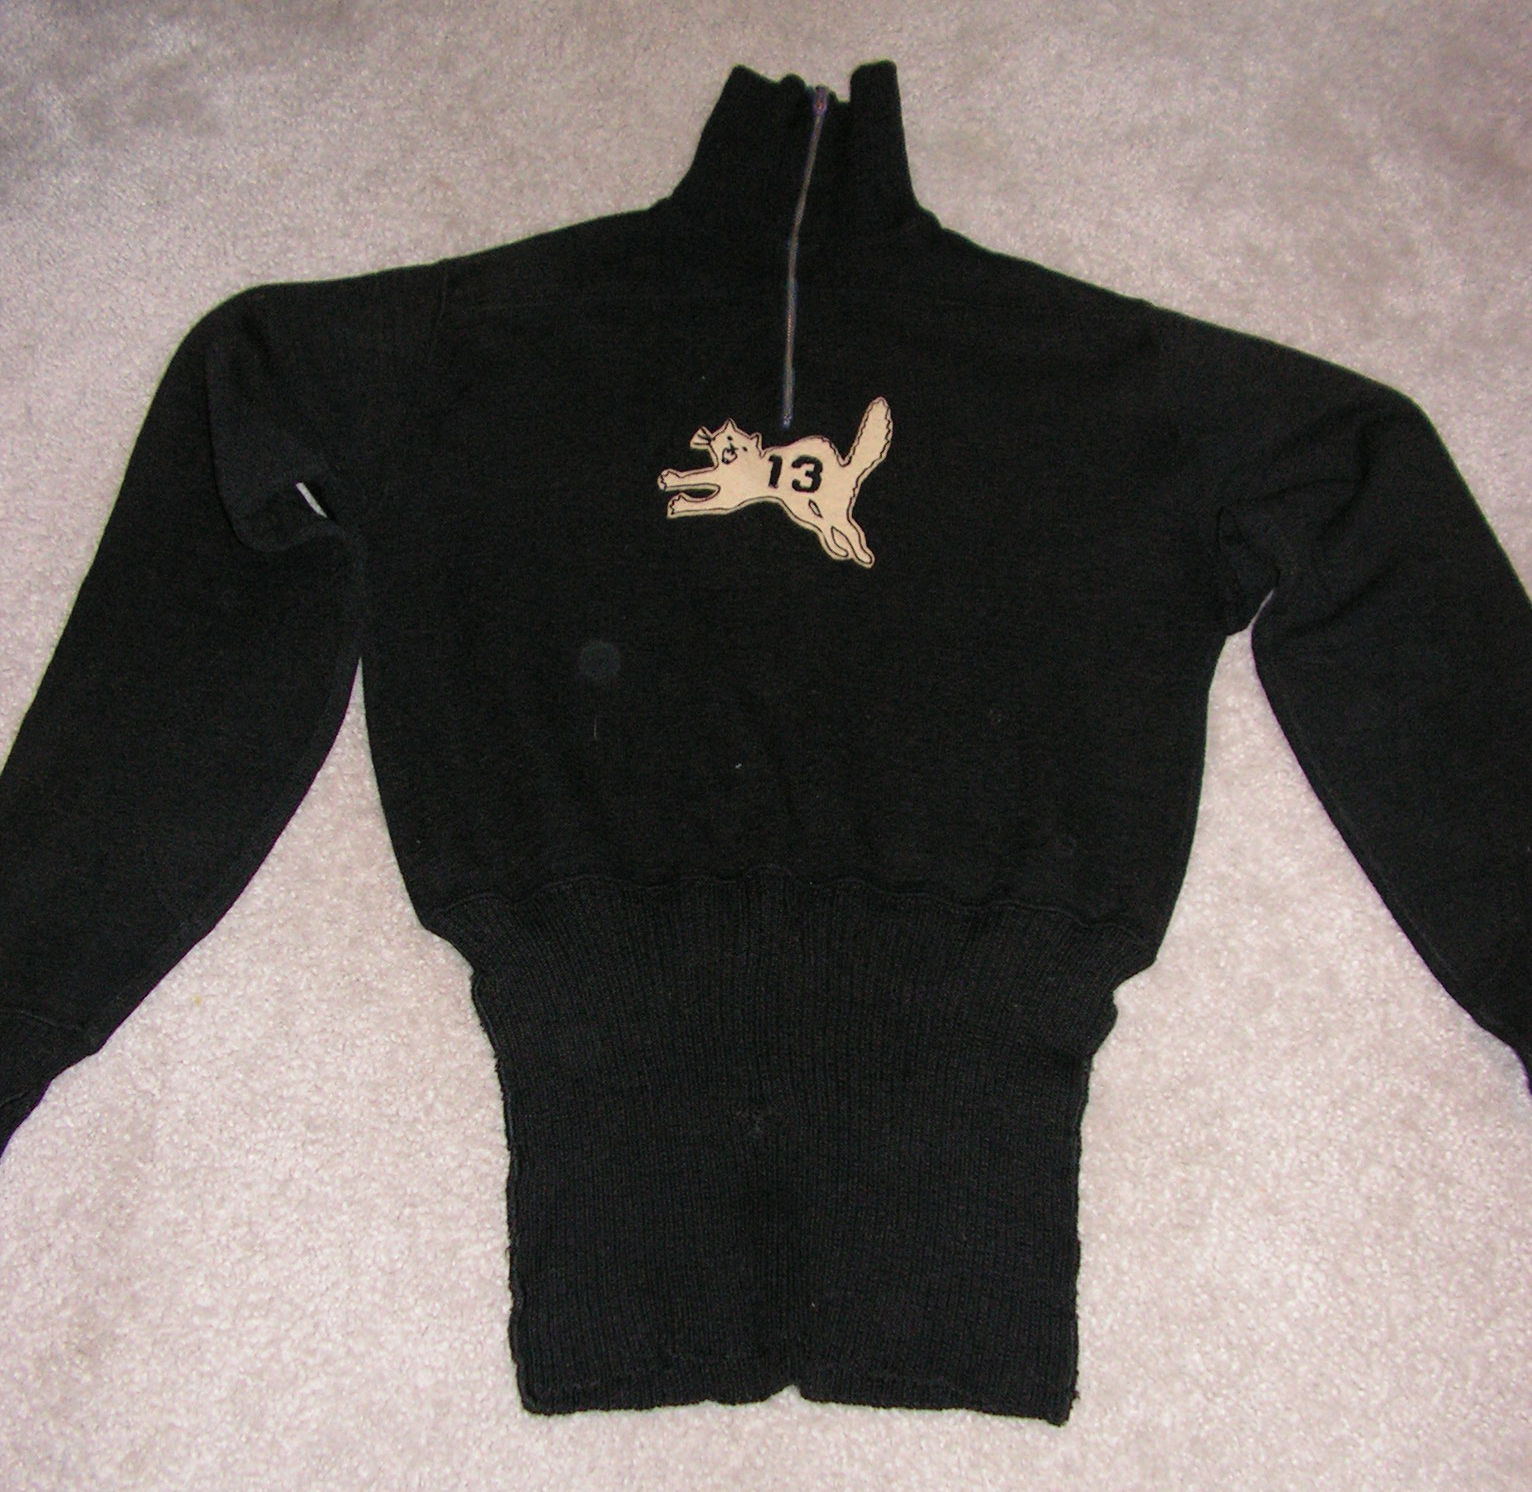 13 Rebels sweater front